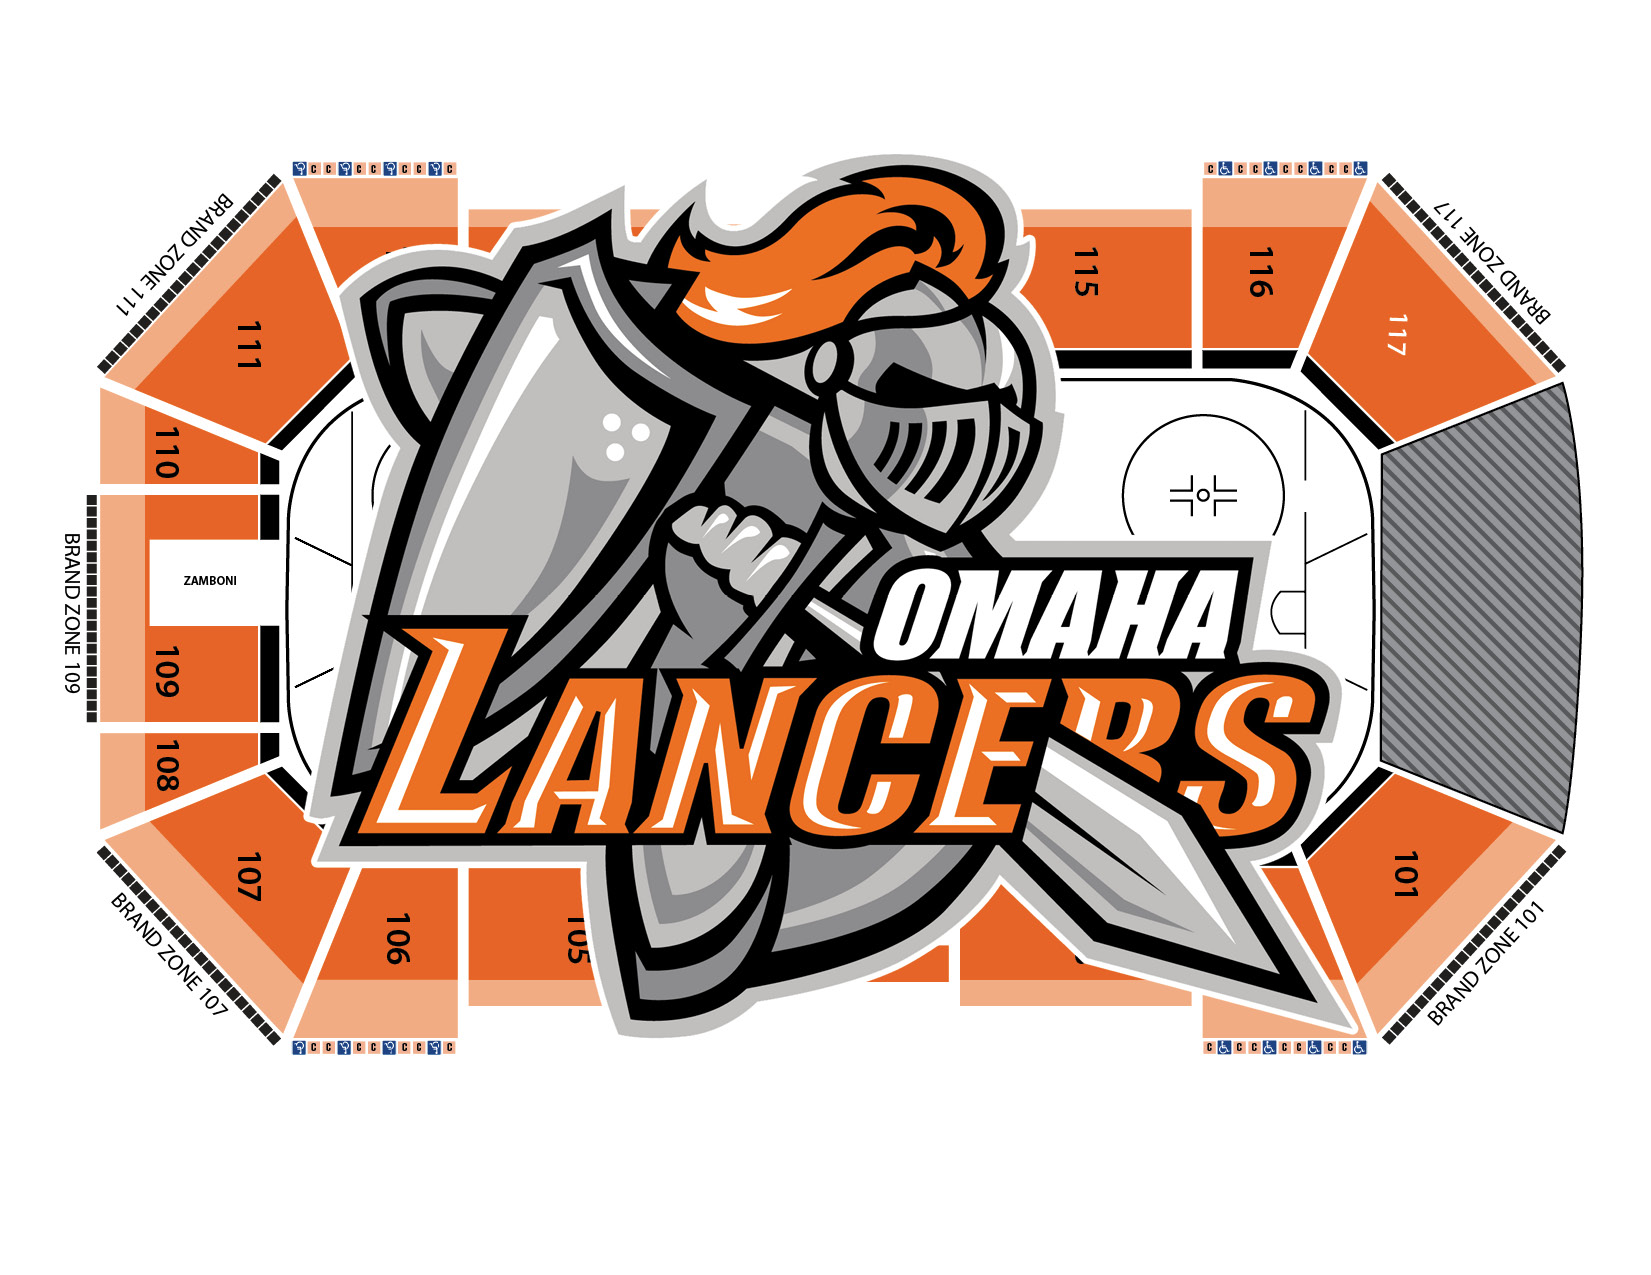 Omaha lancers ticket coupons